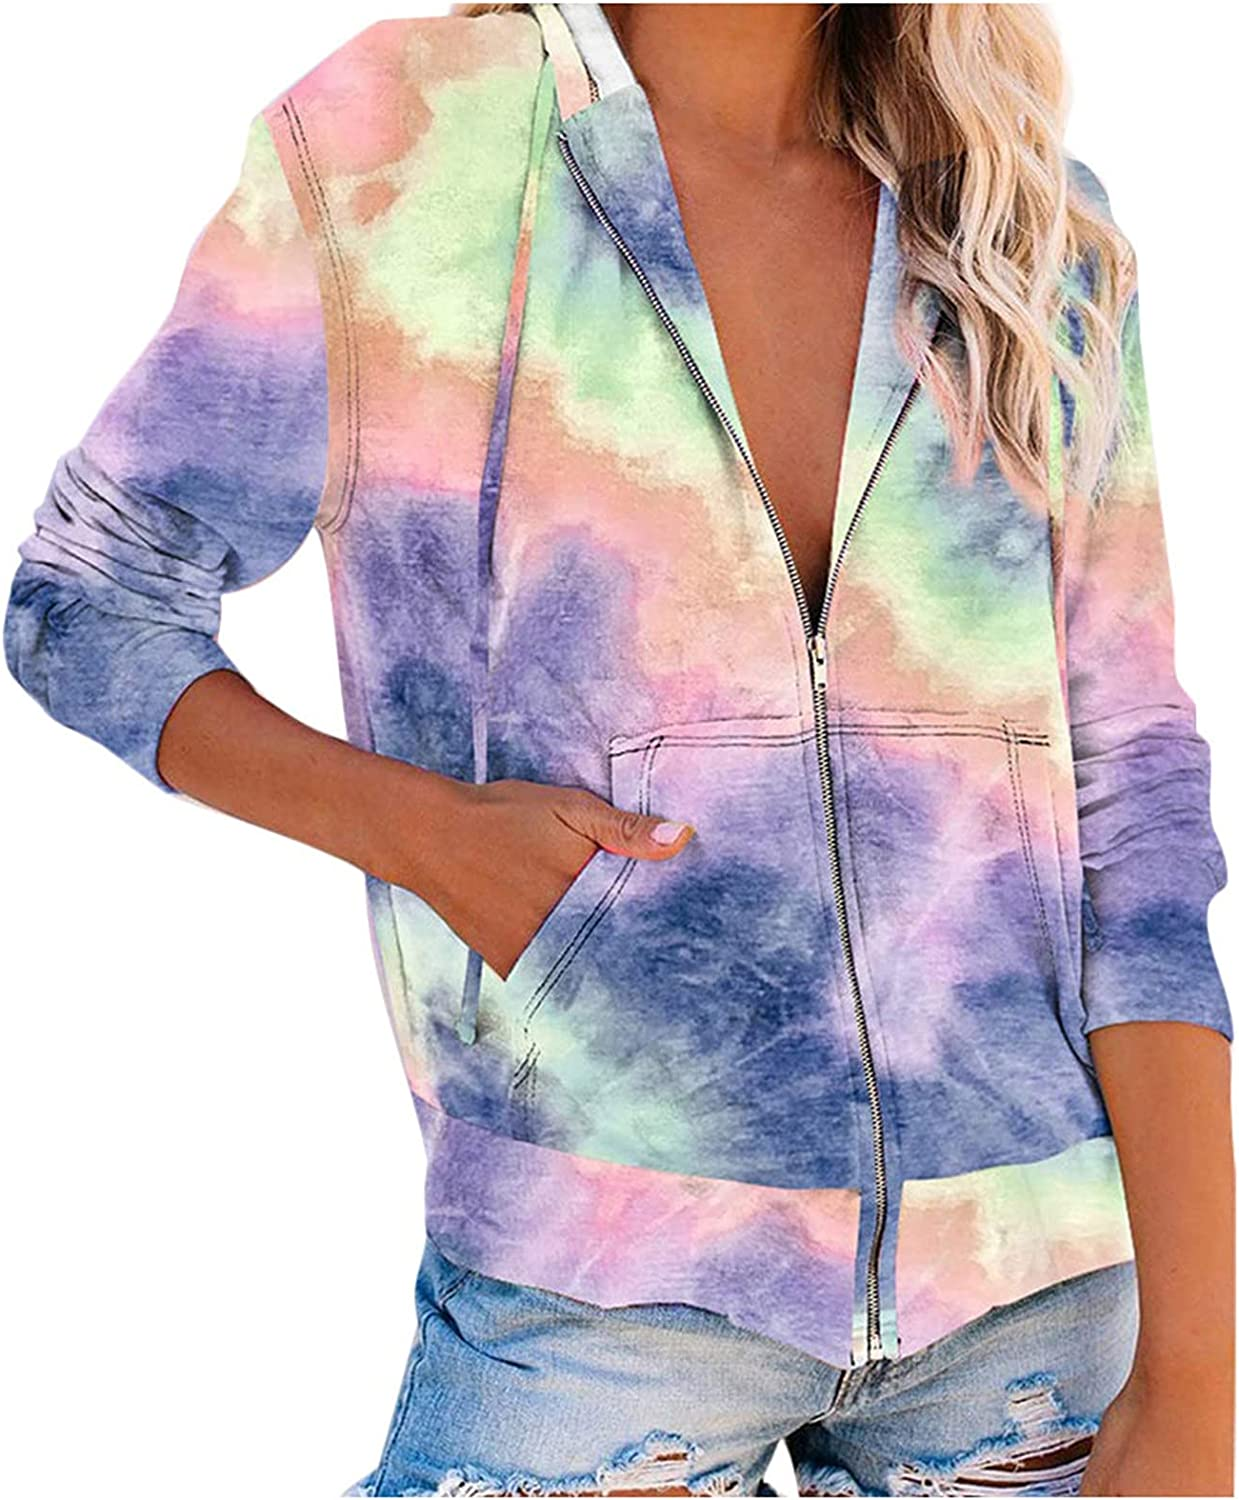 BODOAO Women Y2K Graphic Zip Up Hoodie Long Sleeve Tie Dye Camouflage Hooded Jacket Pullover Casual Sweatshirt with Pockets